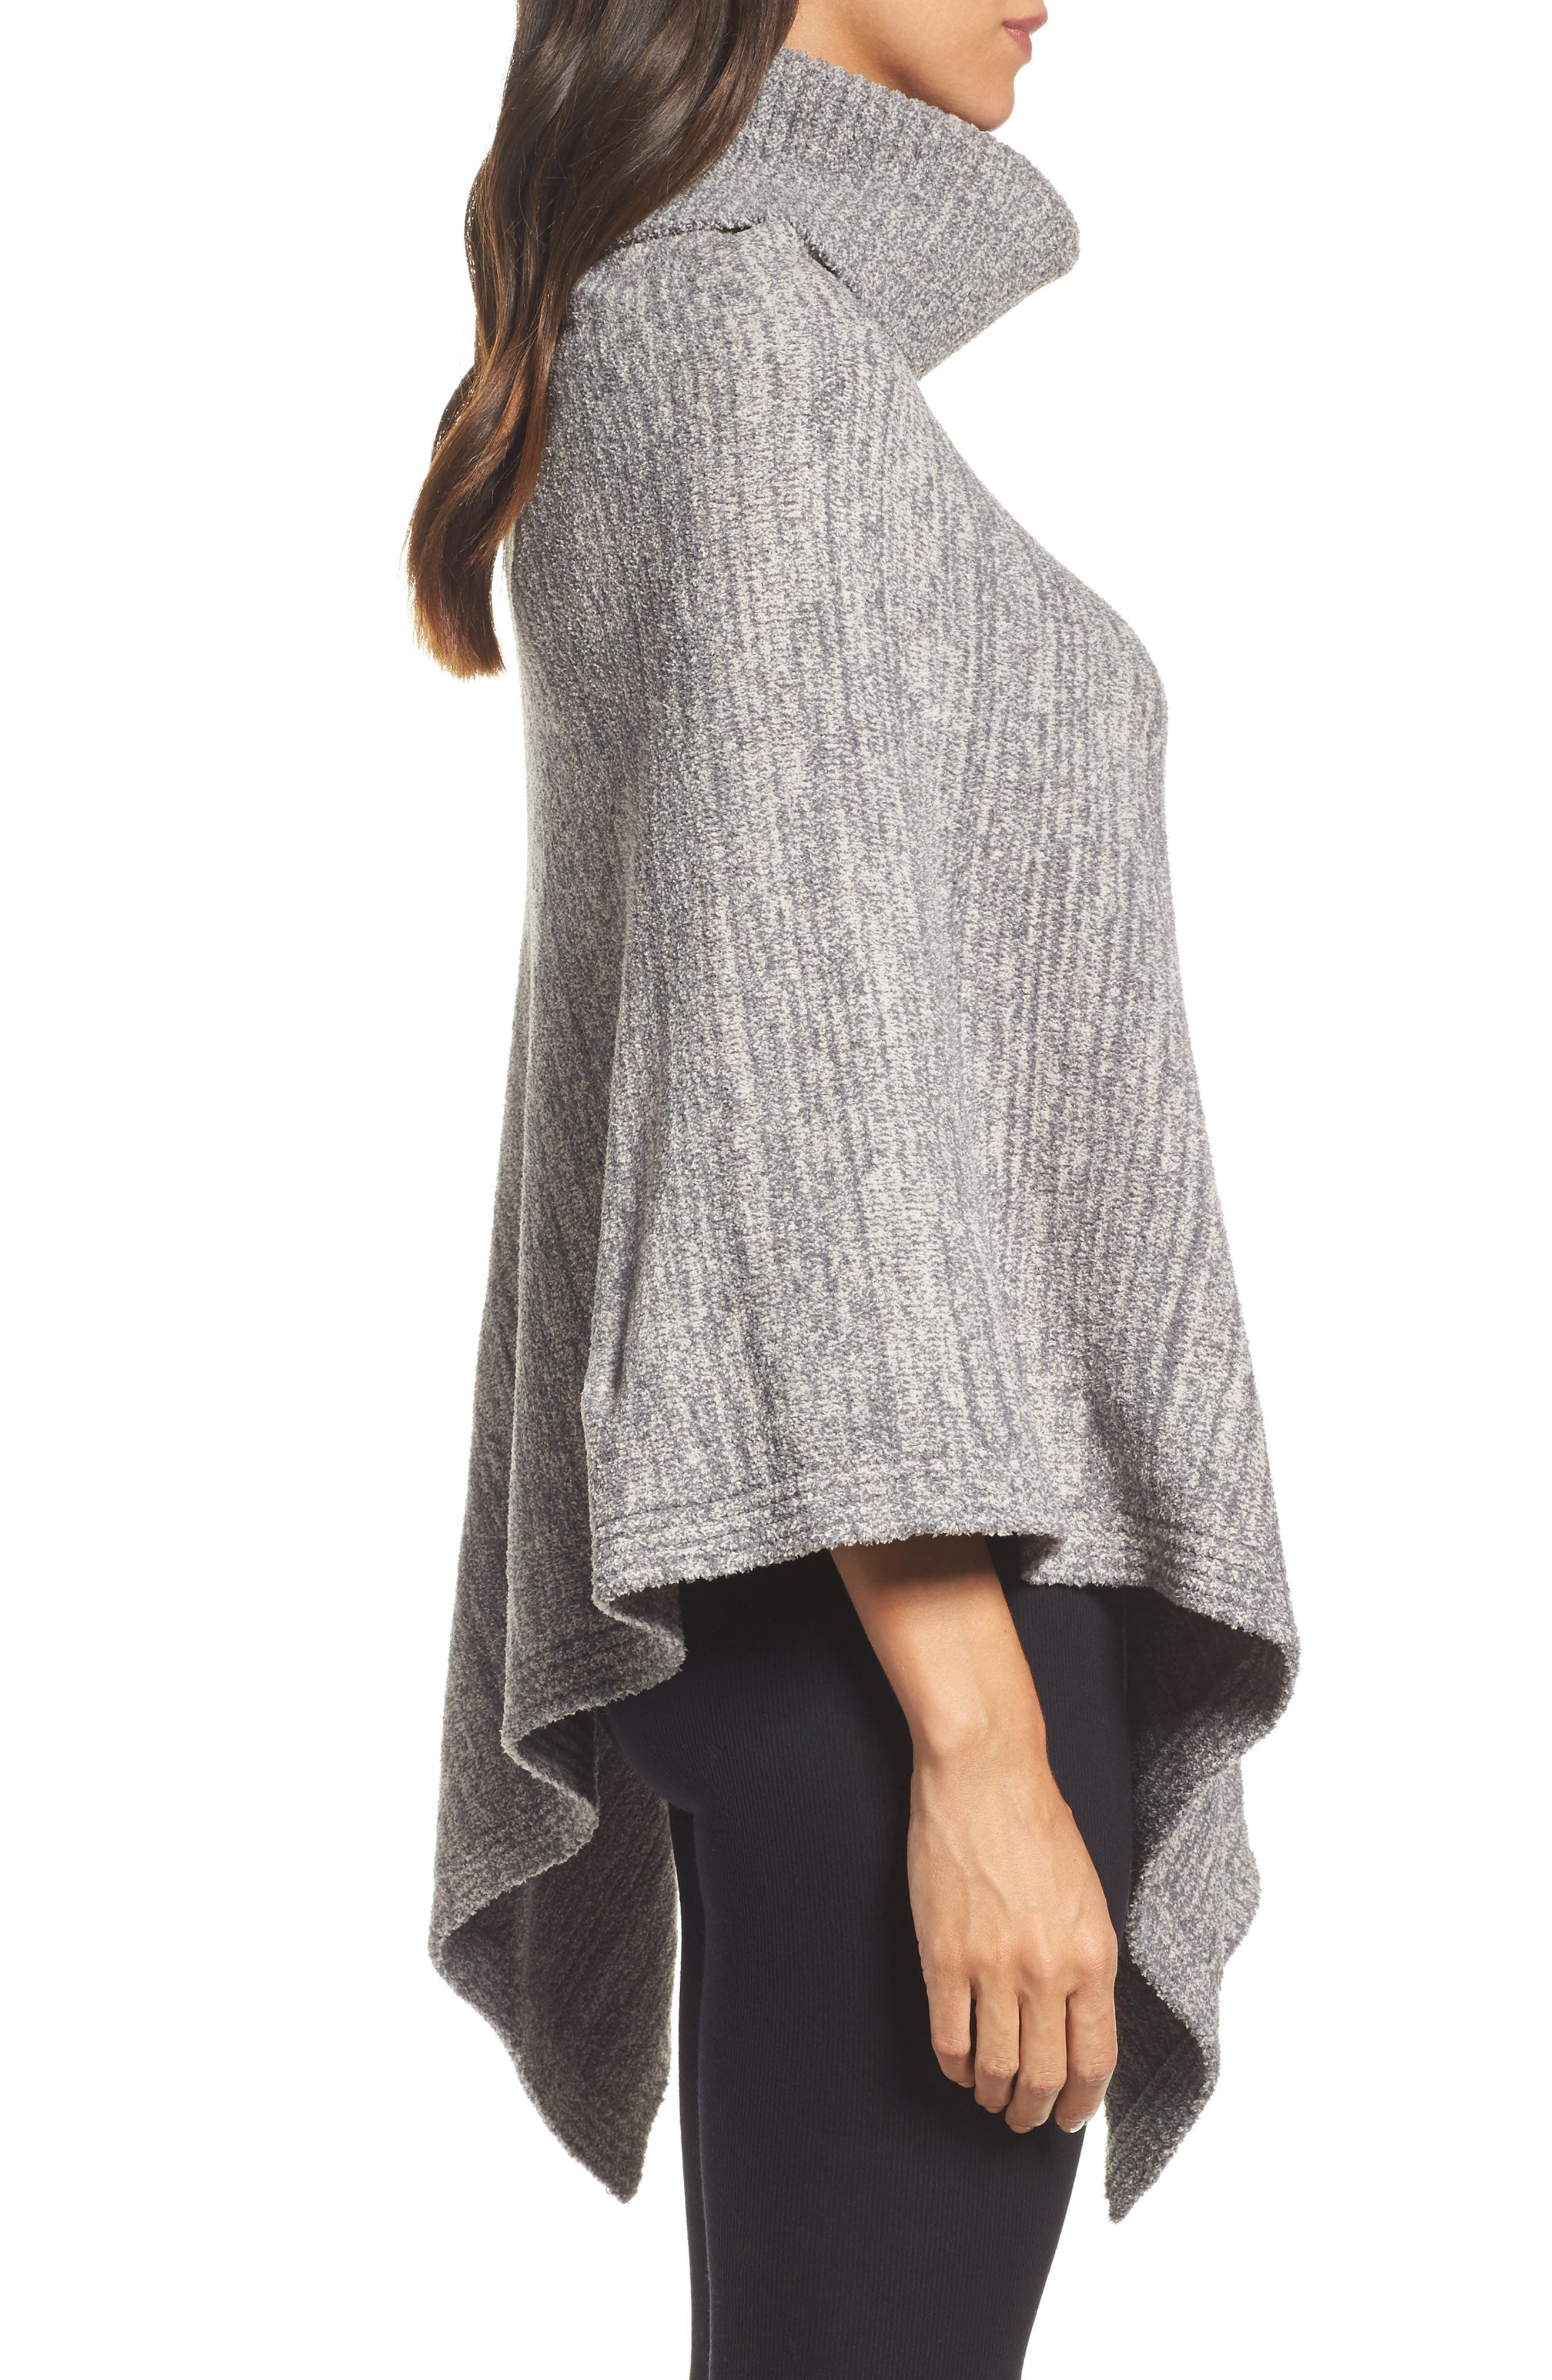 Cozychic<sup>®</sup> Point Dume Poncho,                             Alternate thumbnail 3, color,                             Graphite/ Stone Heathered